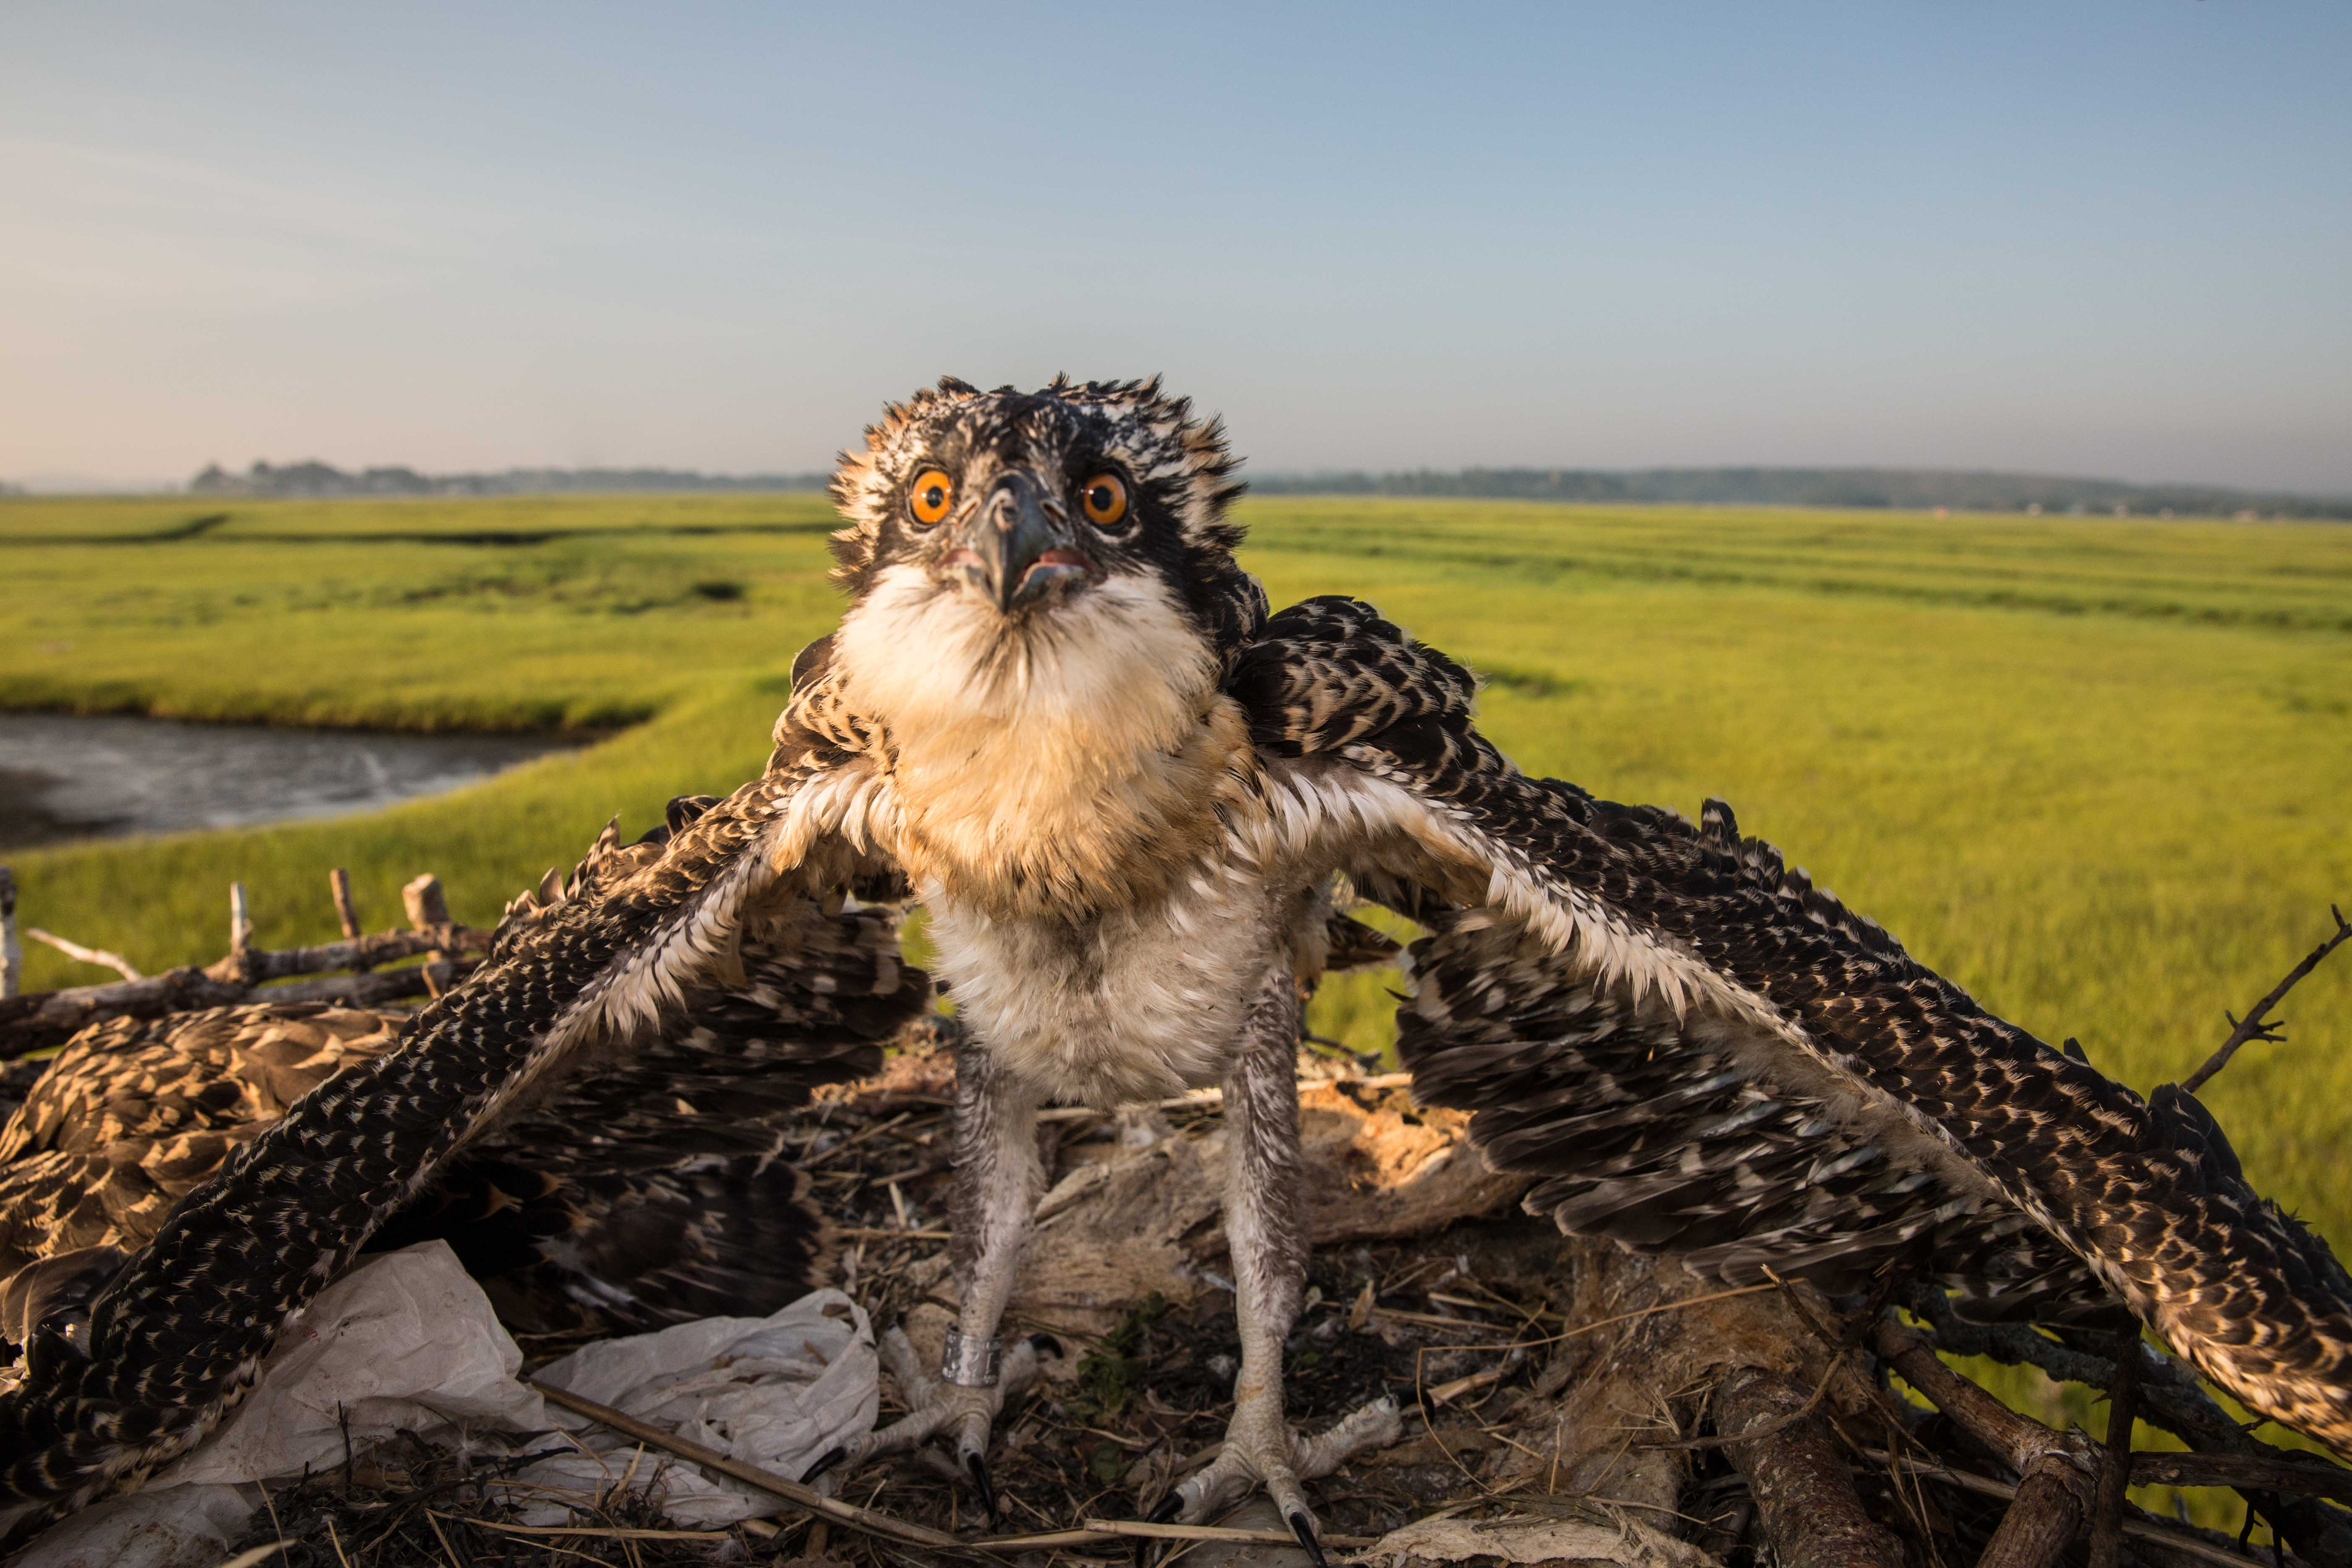 Just banded, this osprey chick glares from its nest on a platform on the Great Marsh. Females lay two to four eggs in the spring. About two months after the birds hatch, they begin to fly, but they stick with their families while they learn to fish. Adult ospreys tend to return to the same nest each year. (Photo by Coco McCabe/GroundTruth)